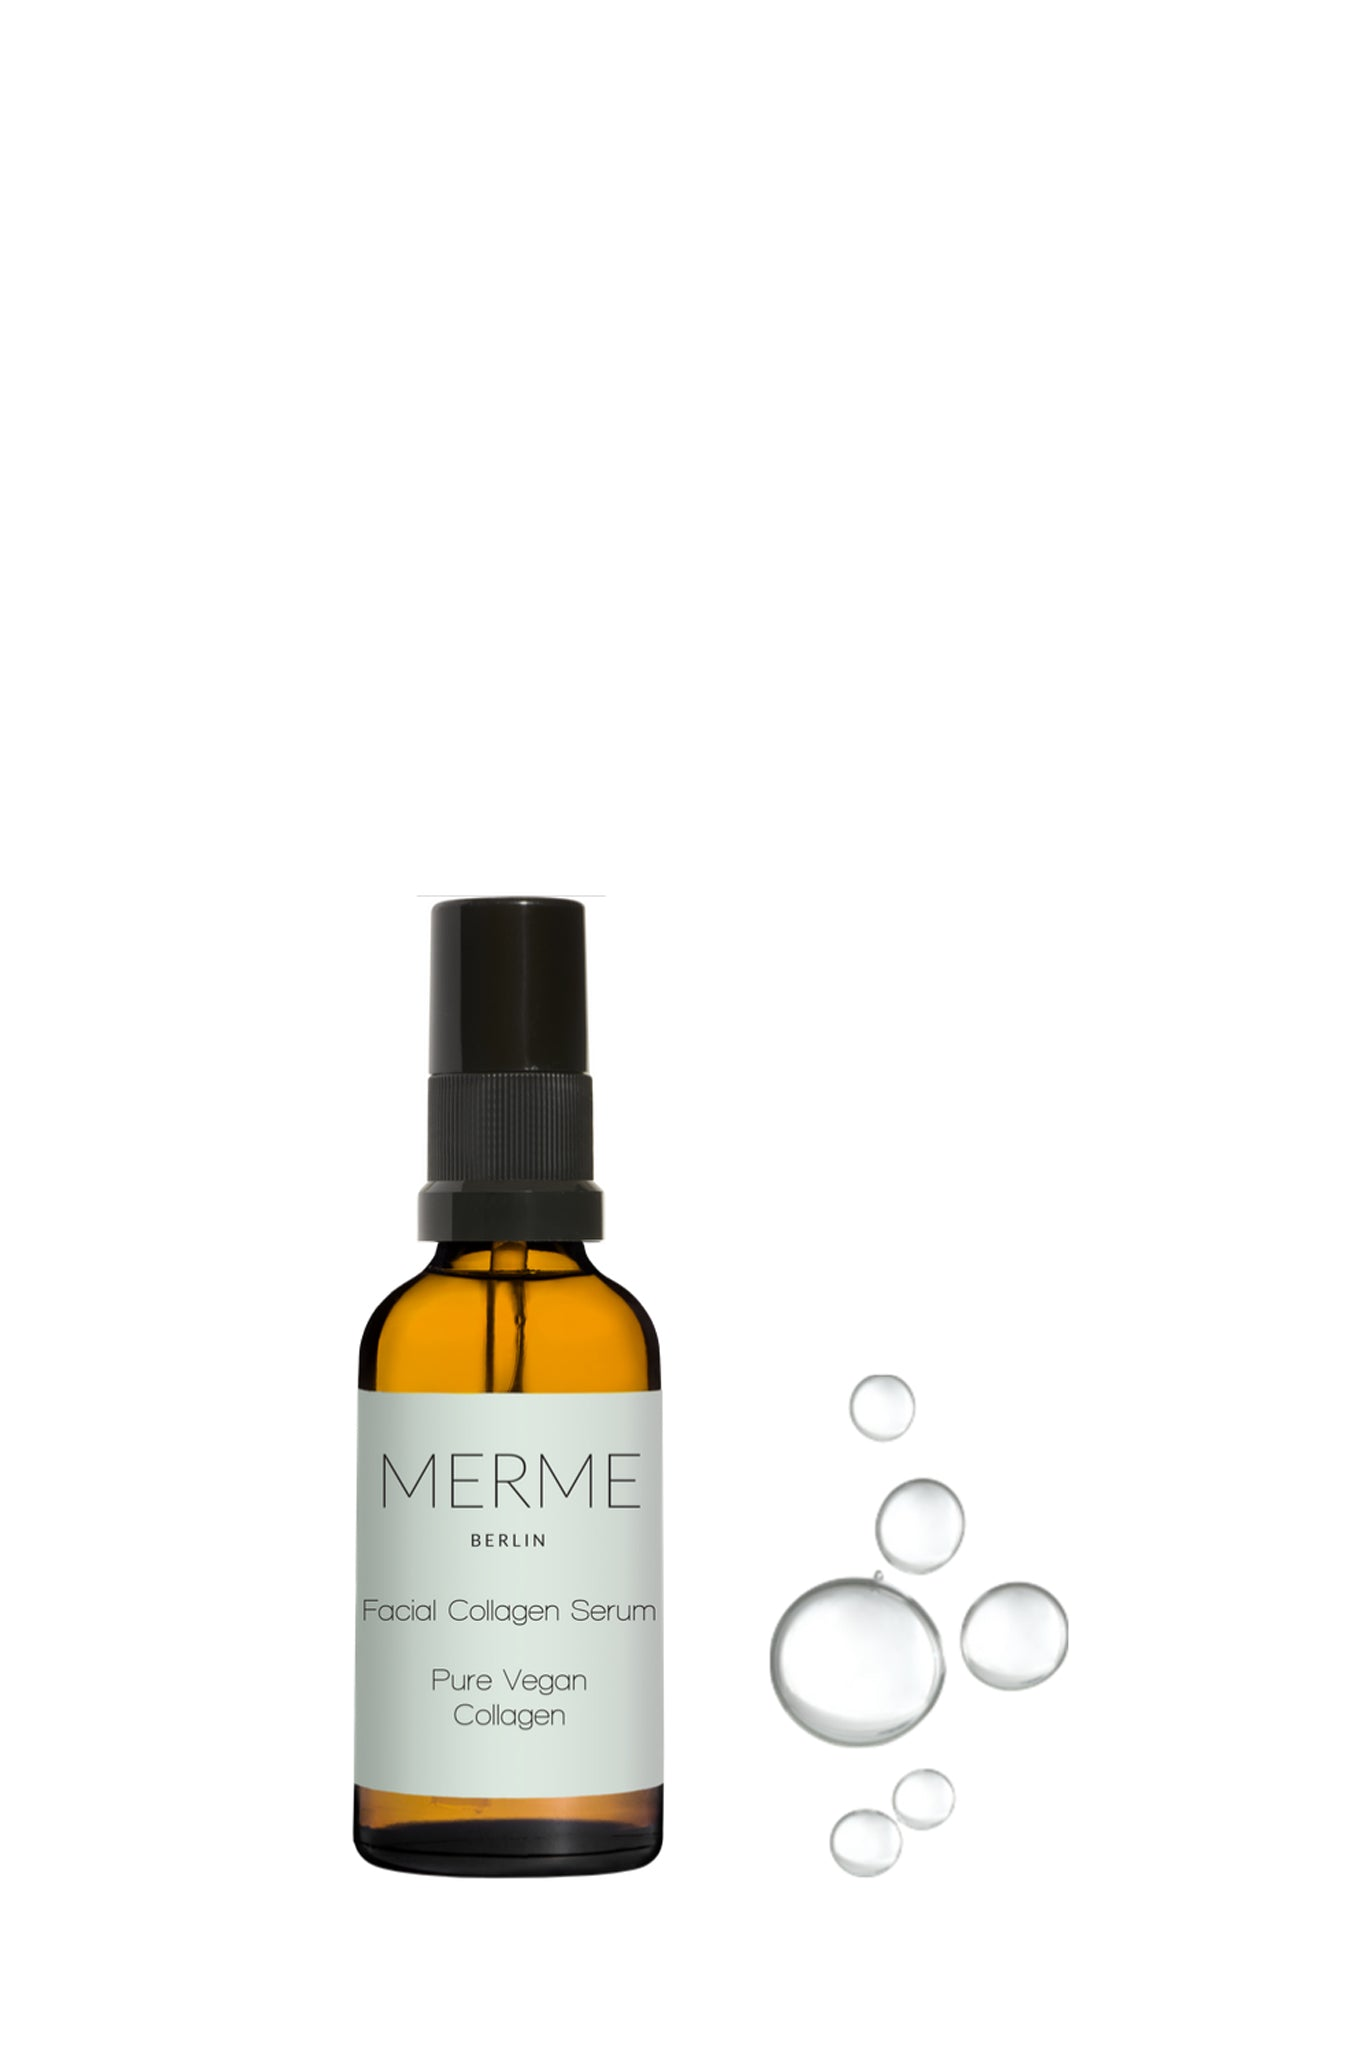 MERME - Organic Facial Collagen Serum